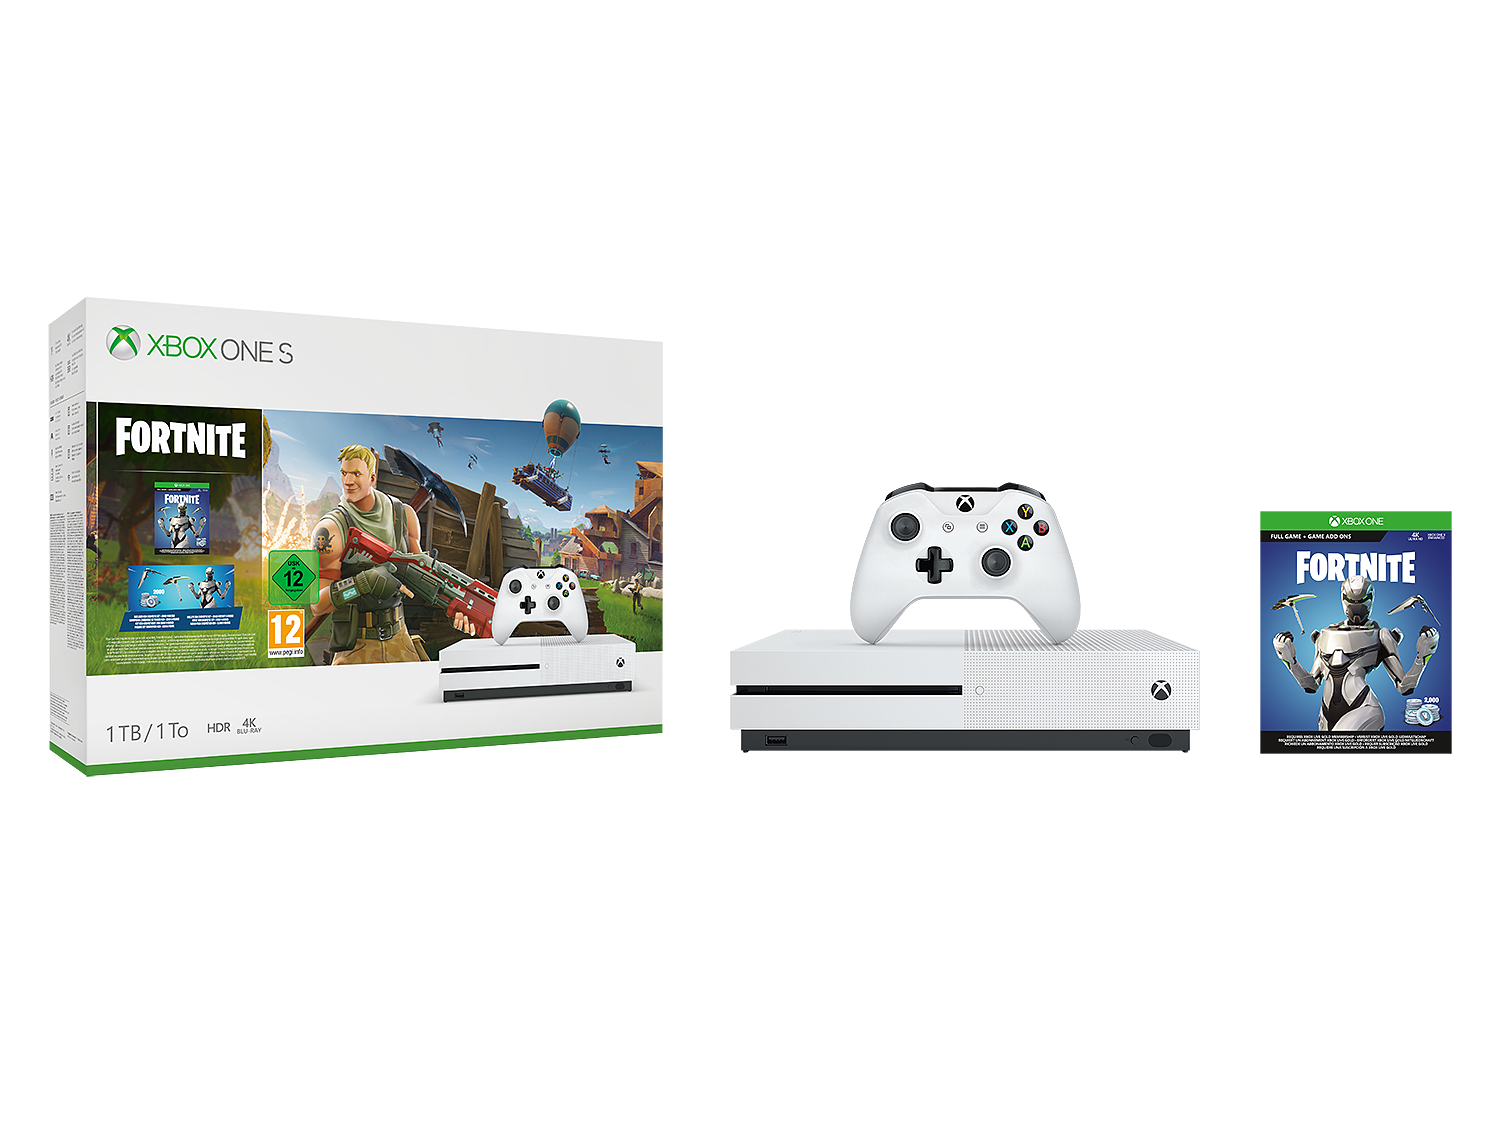 xbox one s 1tb fortnite bundle - can you get fortnite on xbox 360 for free